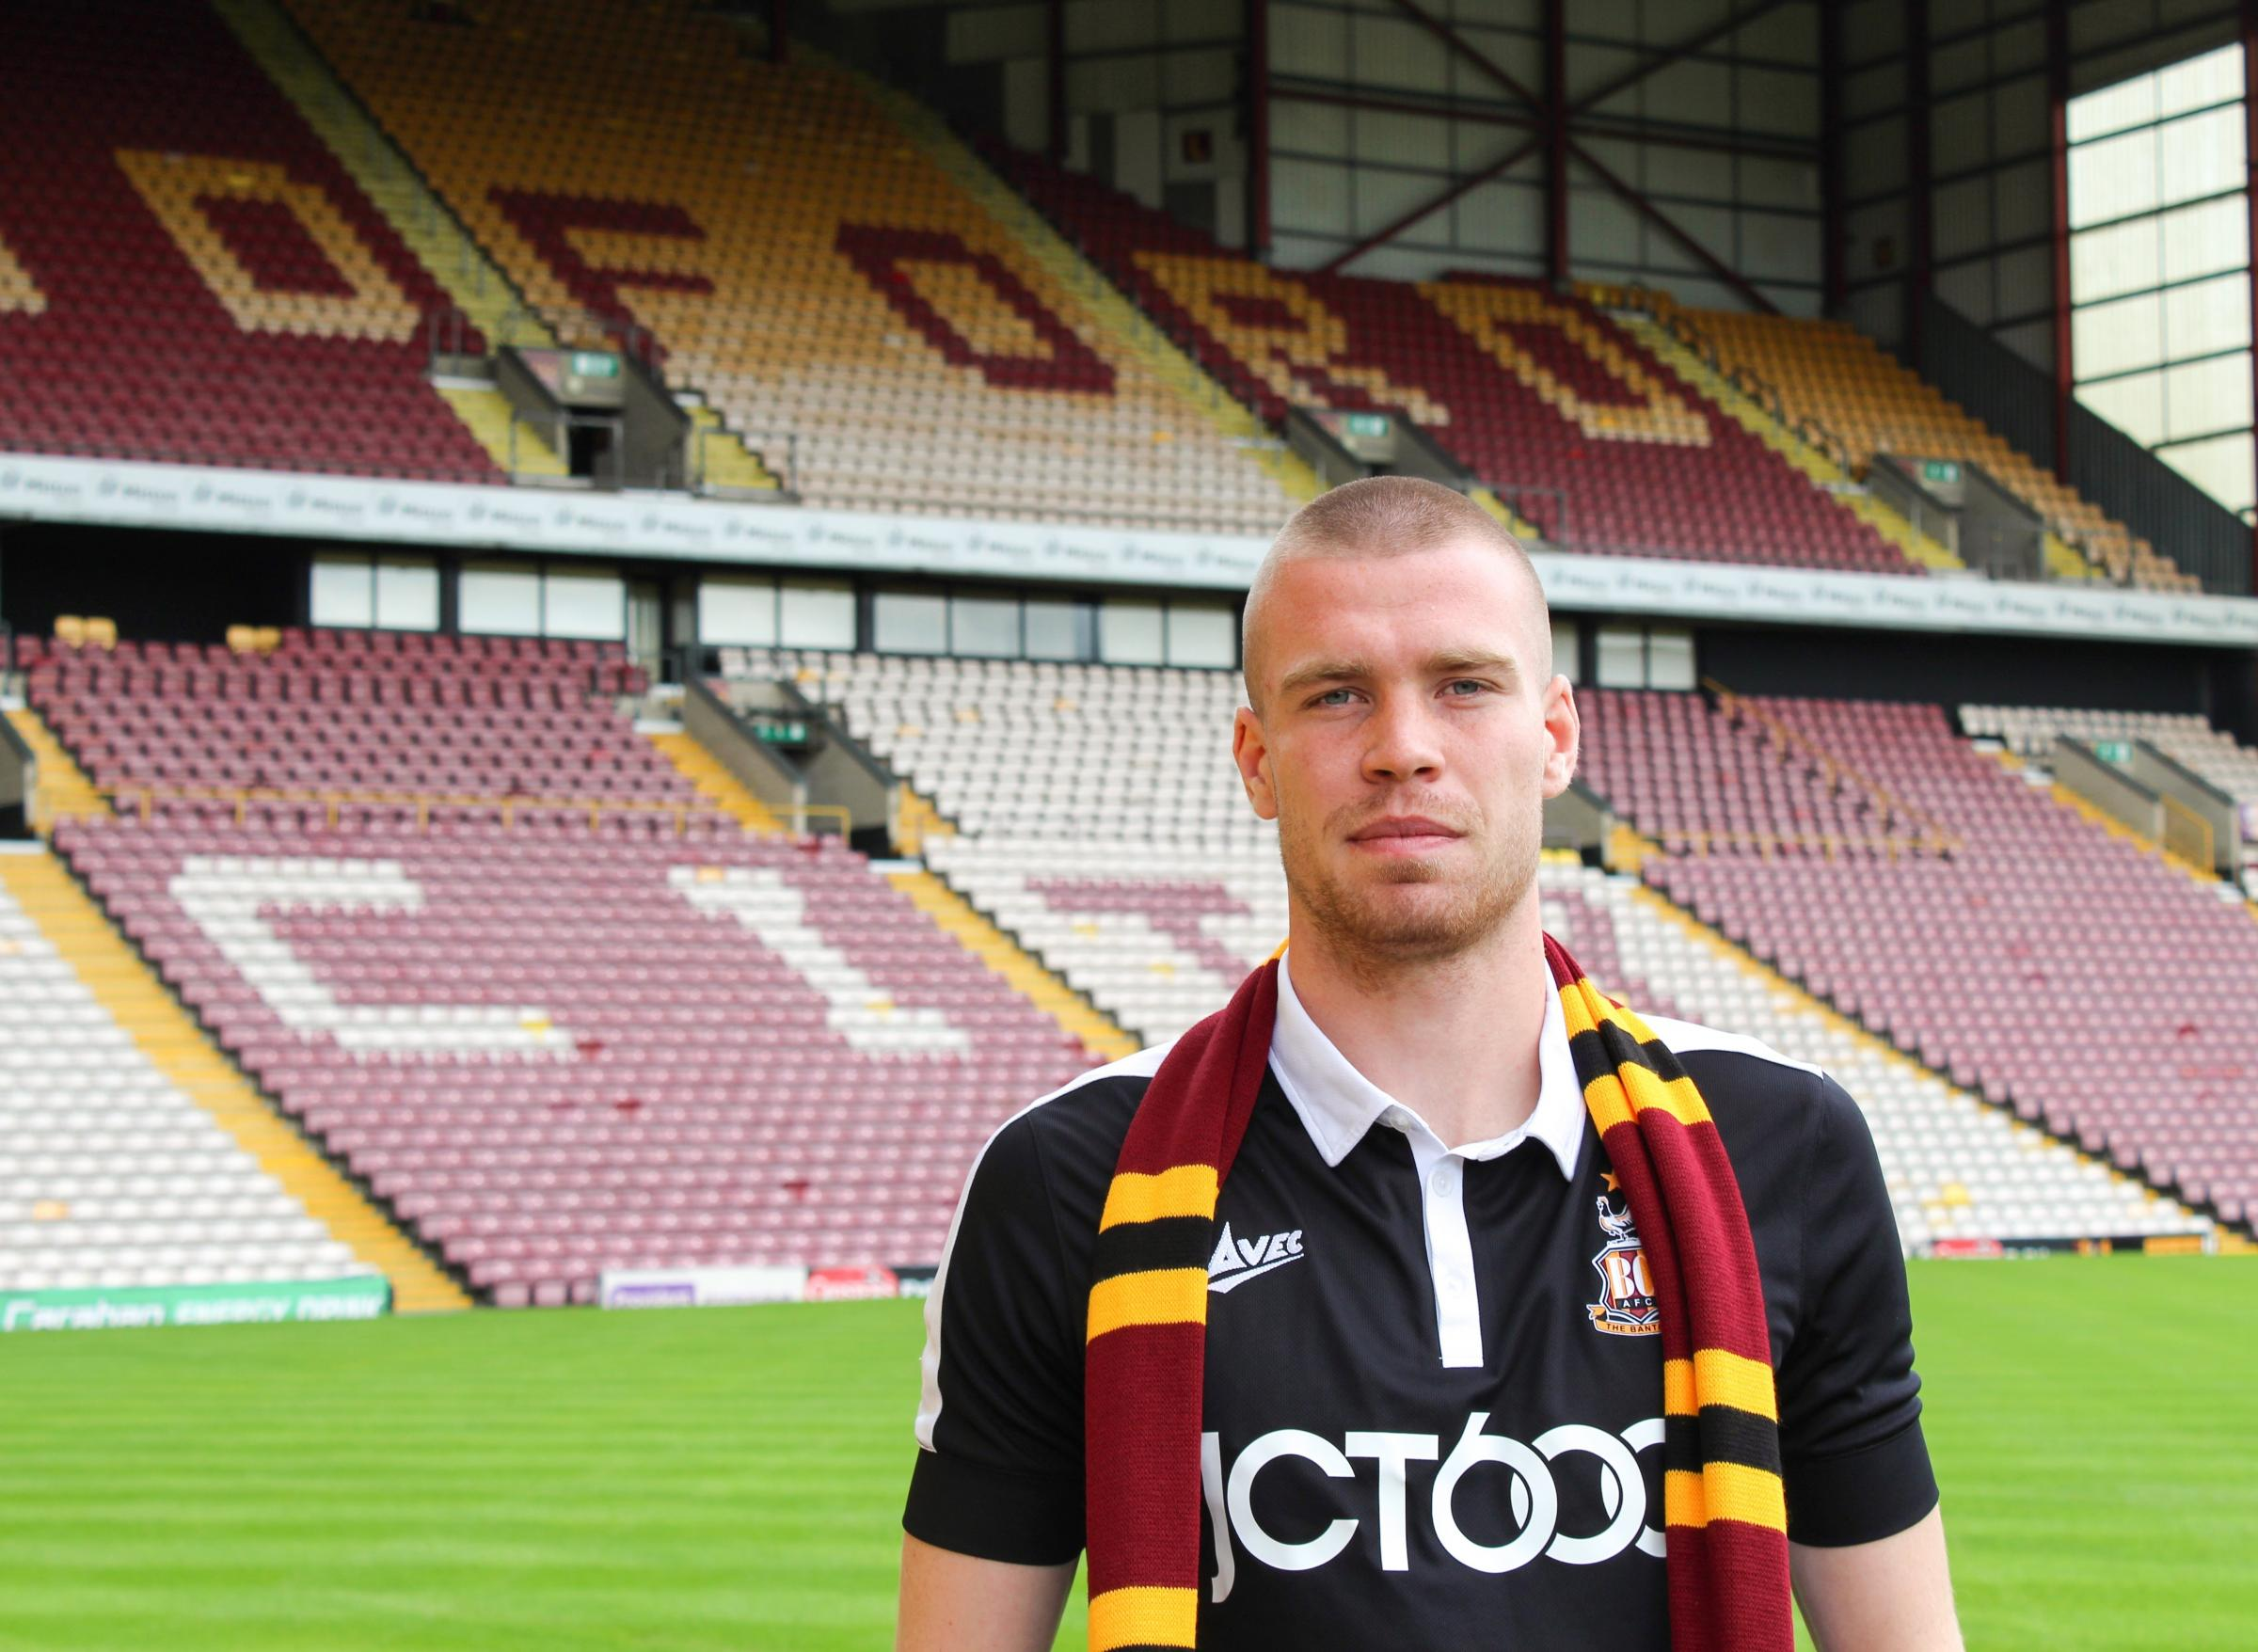 Thomas Isherwood believes City can provide an ideal environment for his development   Picture: Bradford City